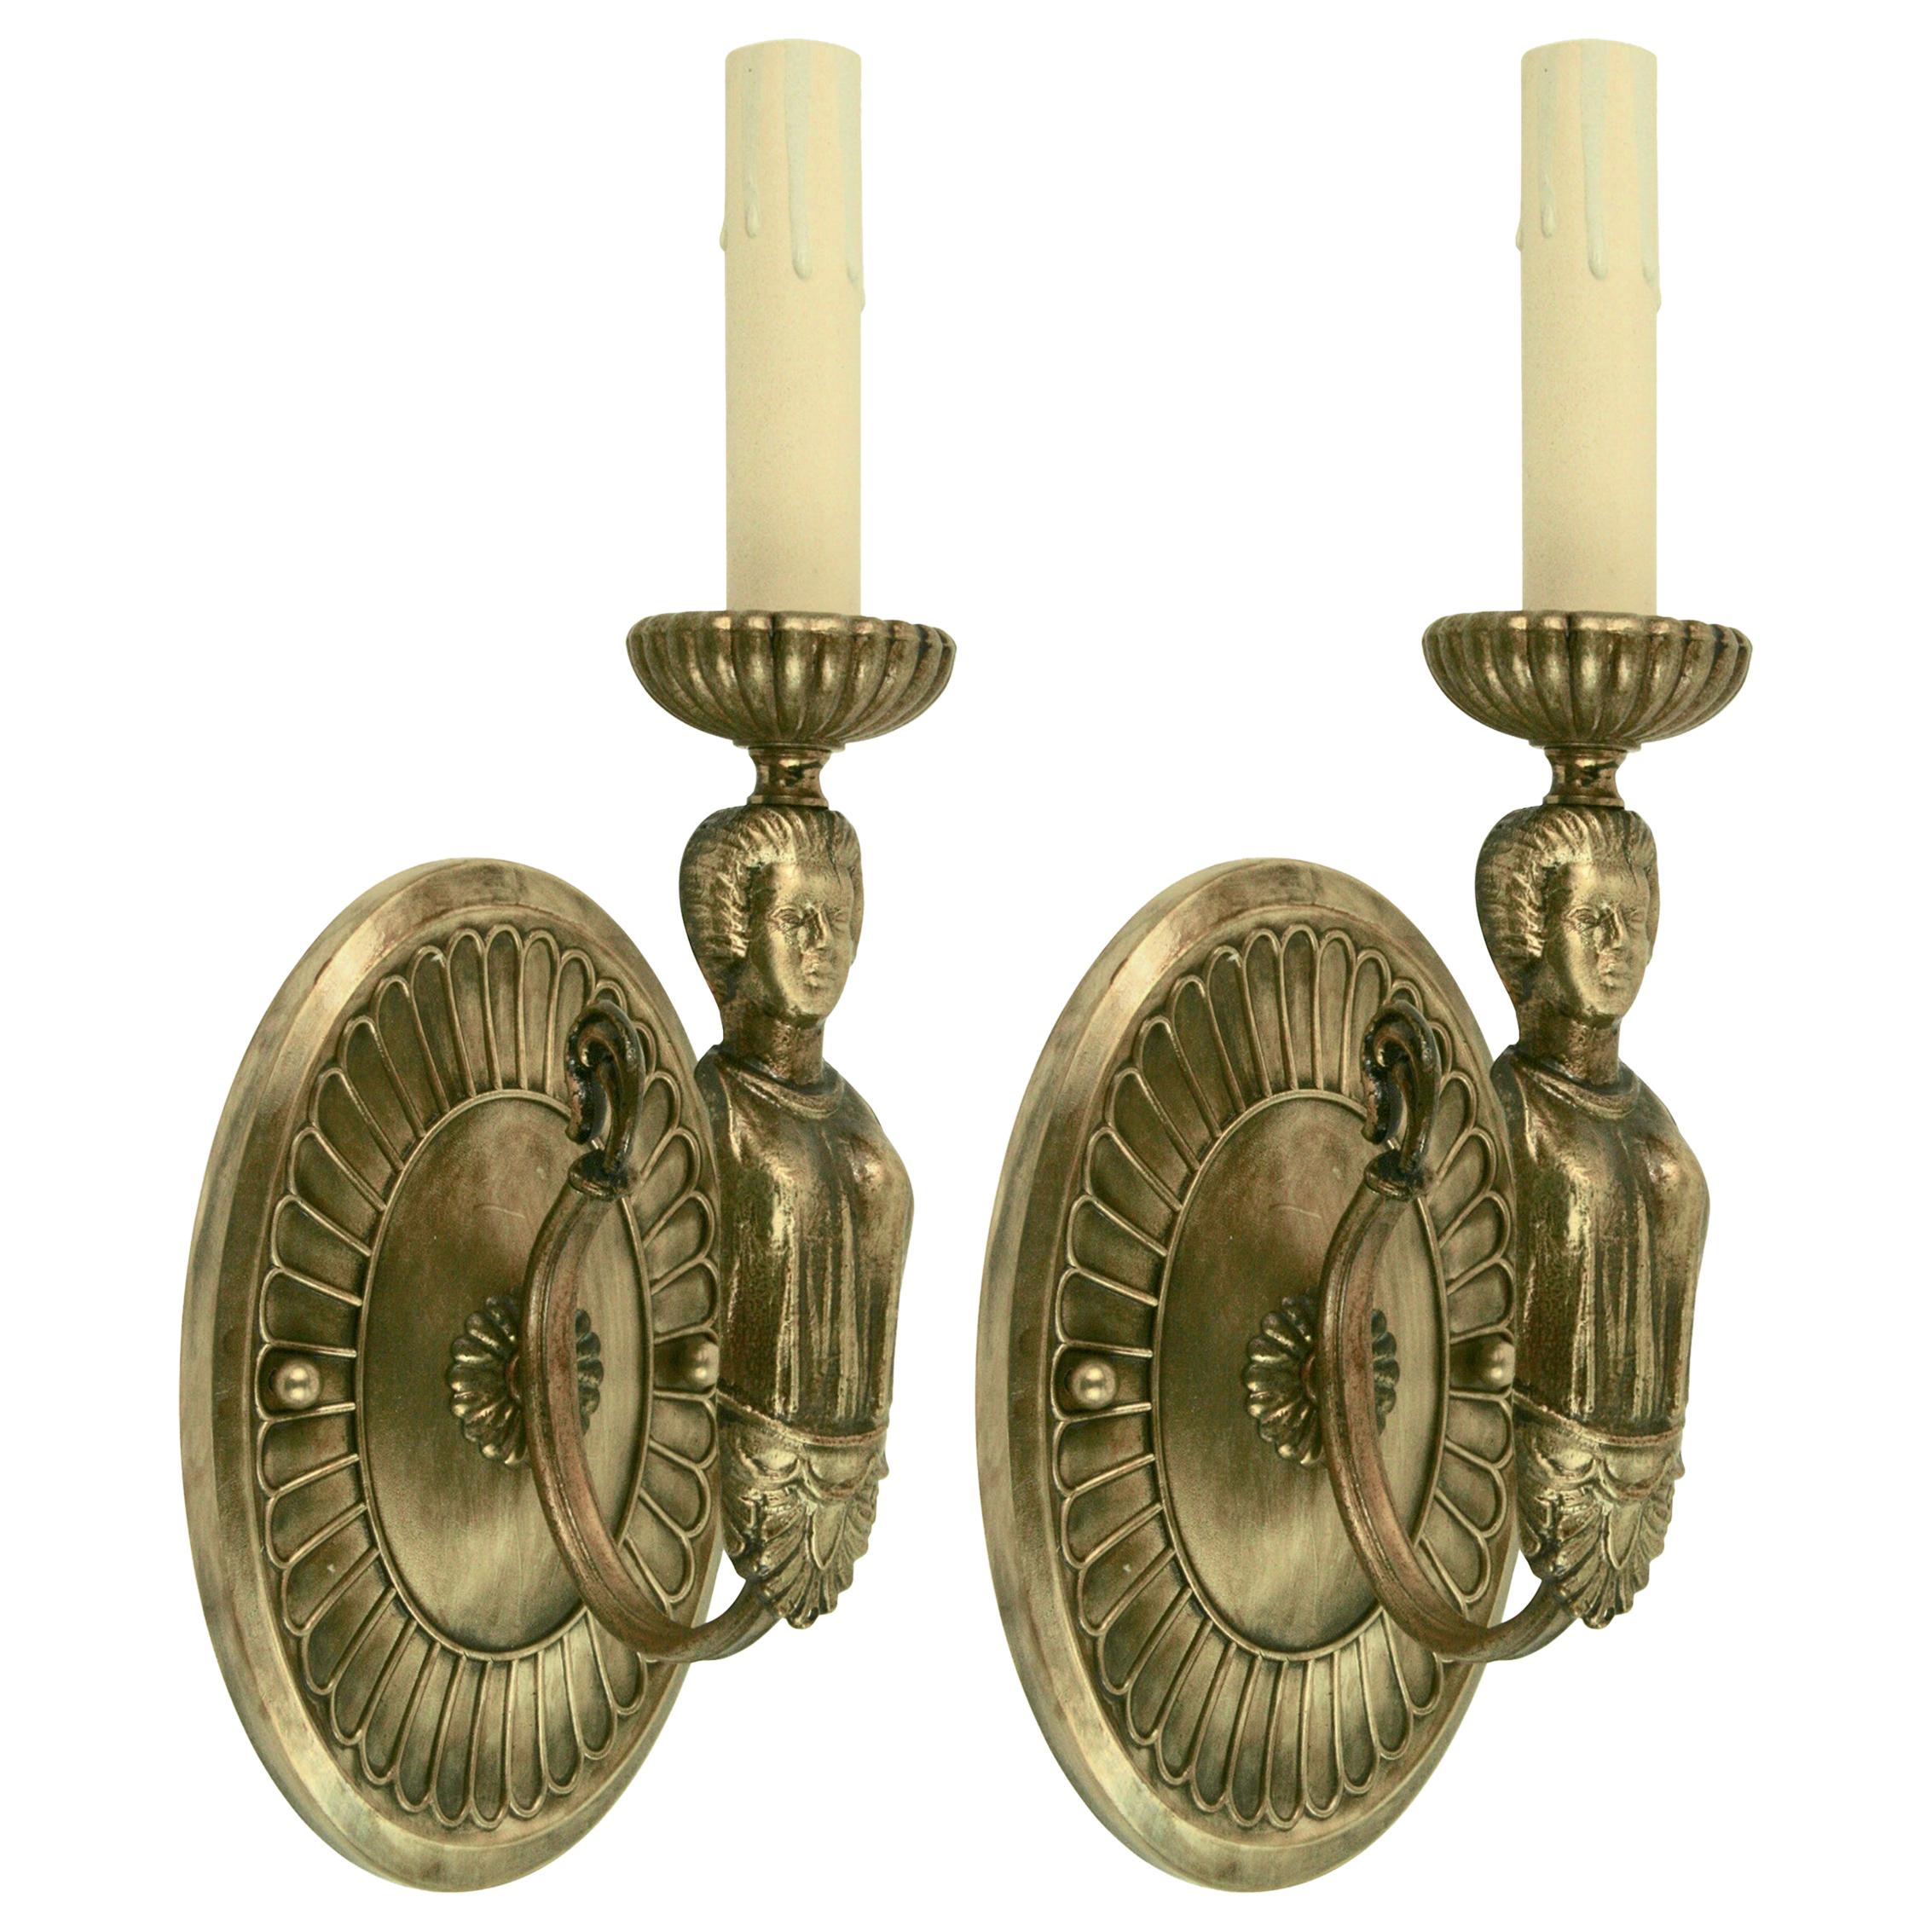 Pair of Figural Brass Sconce